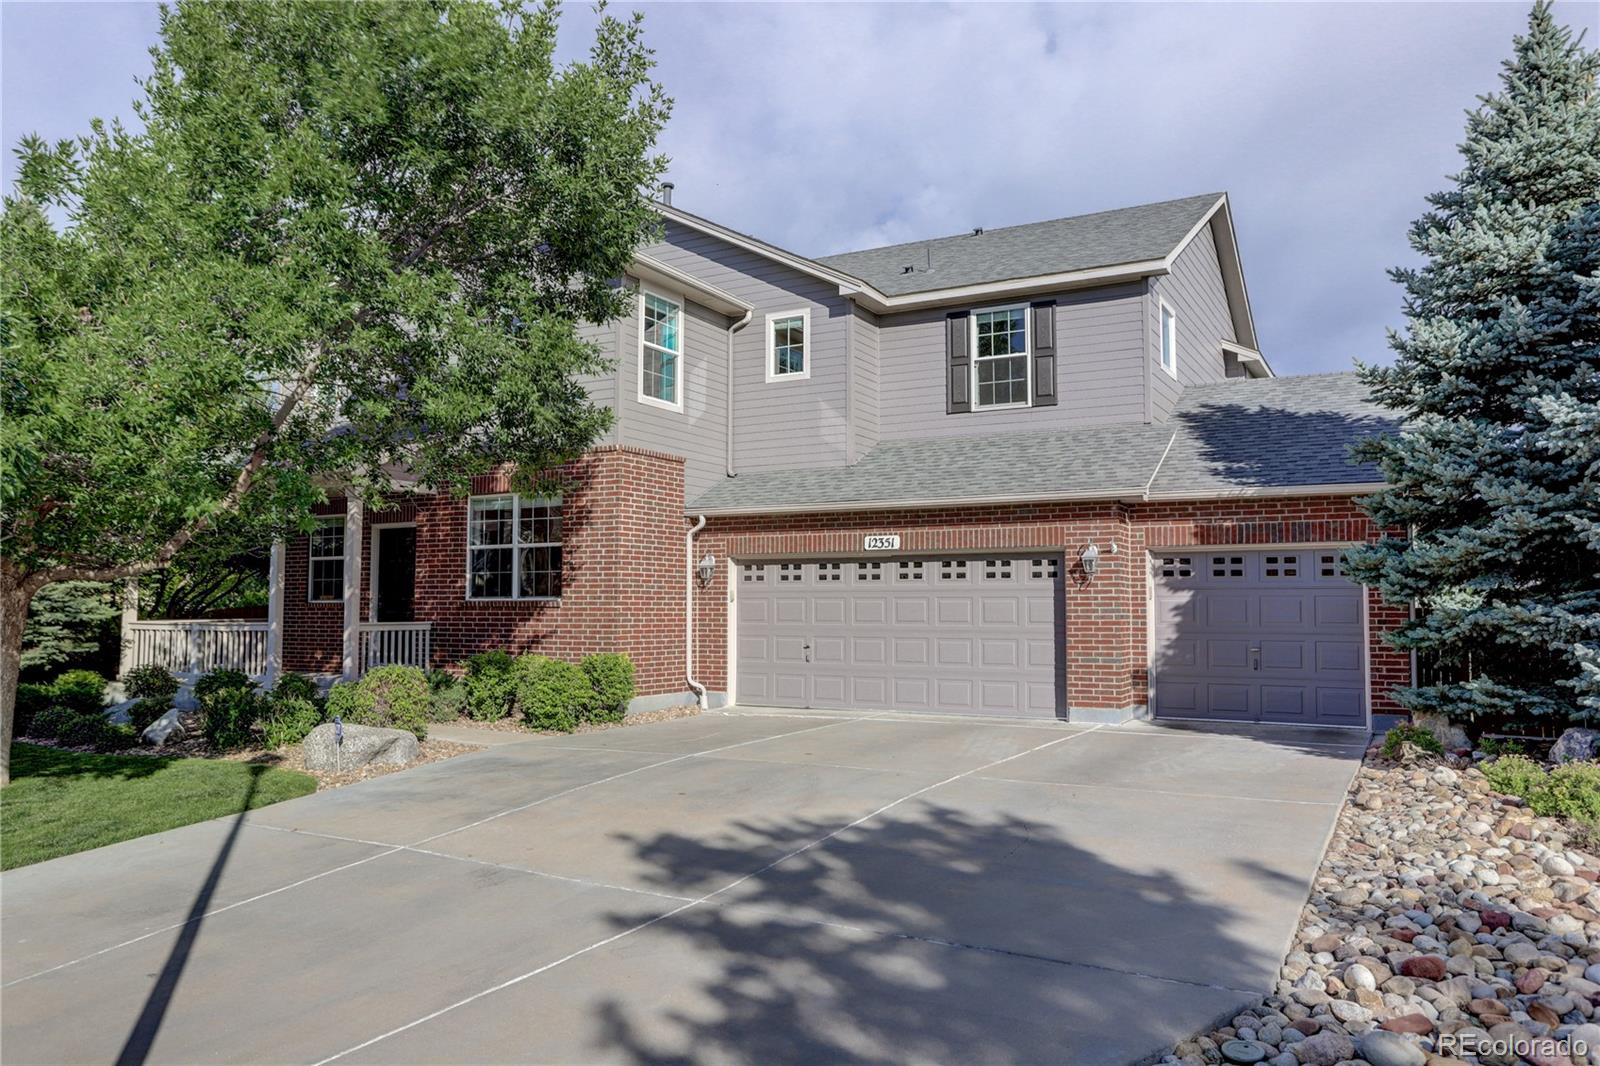 MLS# 7882601 - 2 - 12351 Quince Street, Thornton, CO 80602